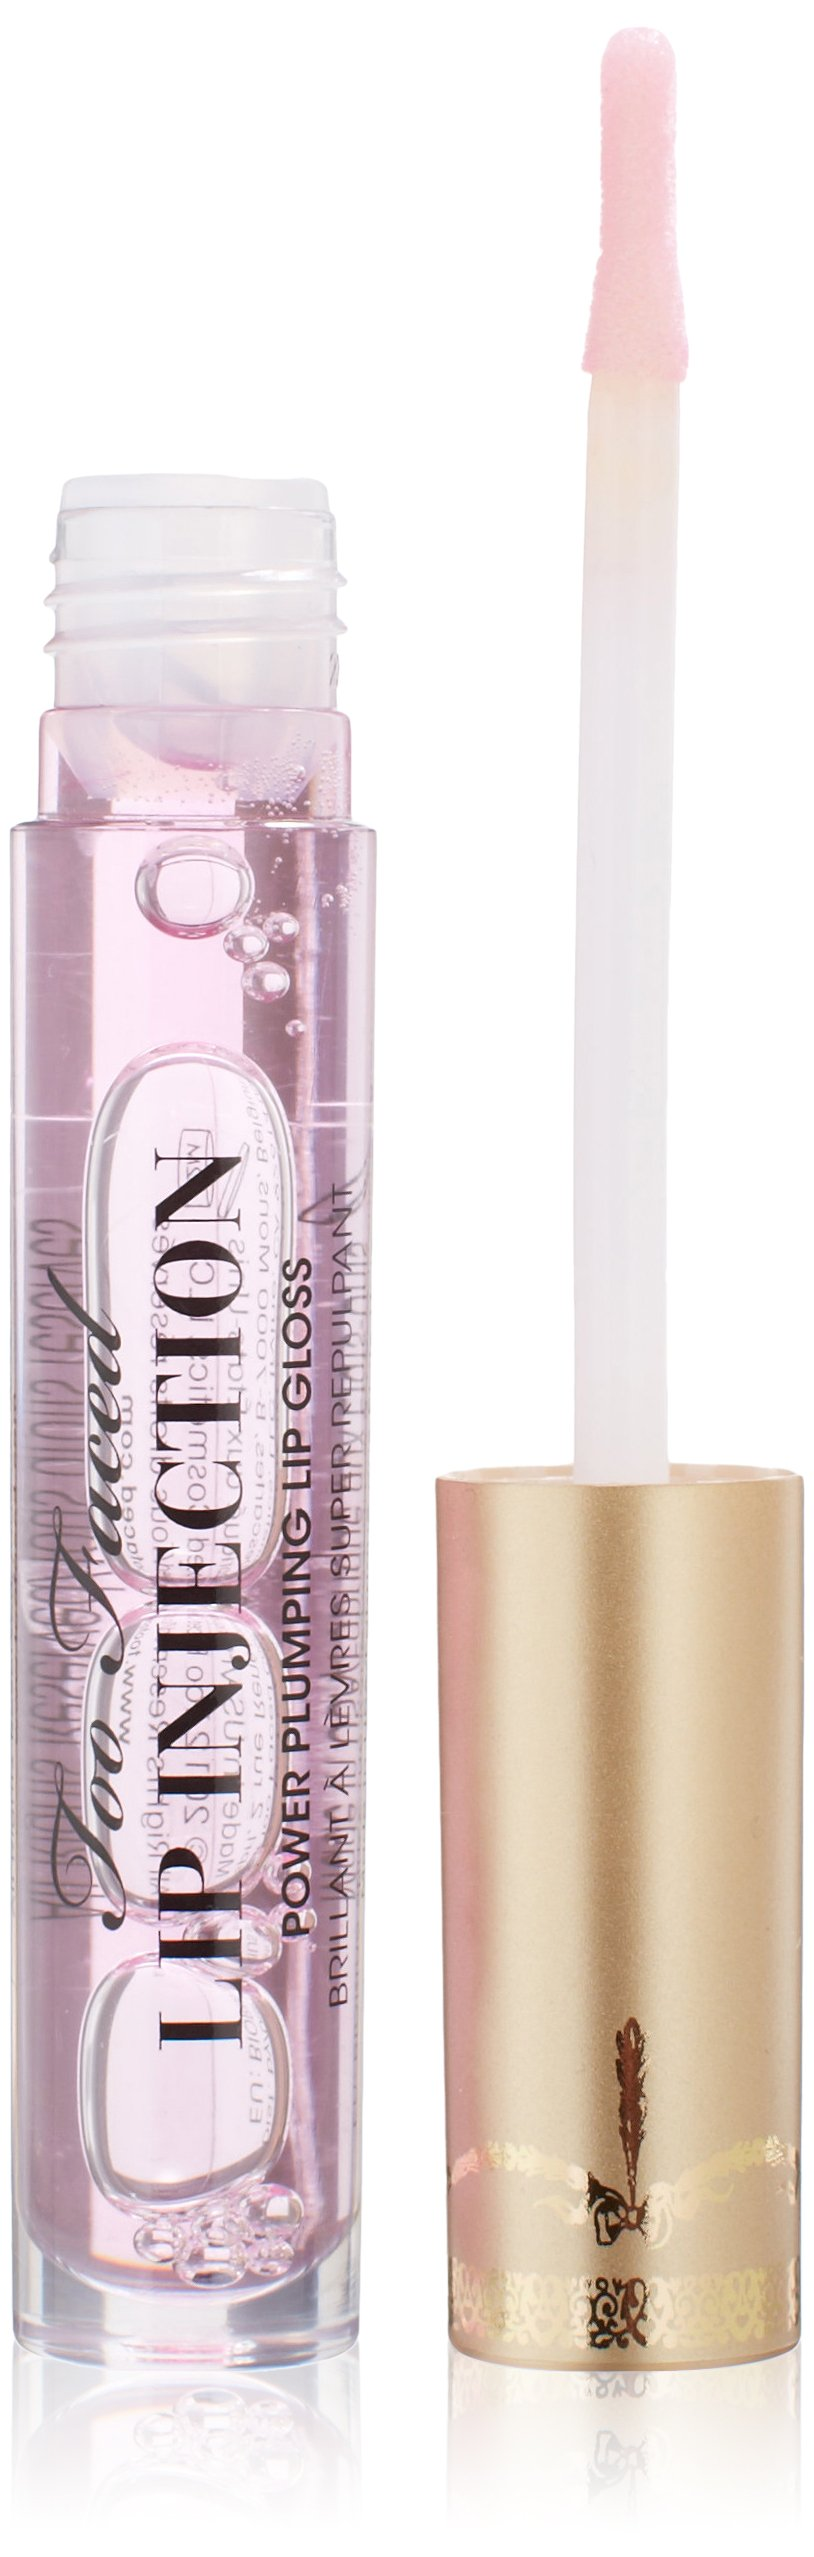 Too Faced Lip Injection Power Plumping Lip Gloss for Women, 0.14 Ounce by Too Faced